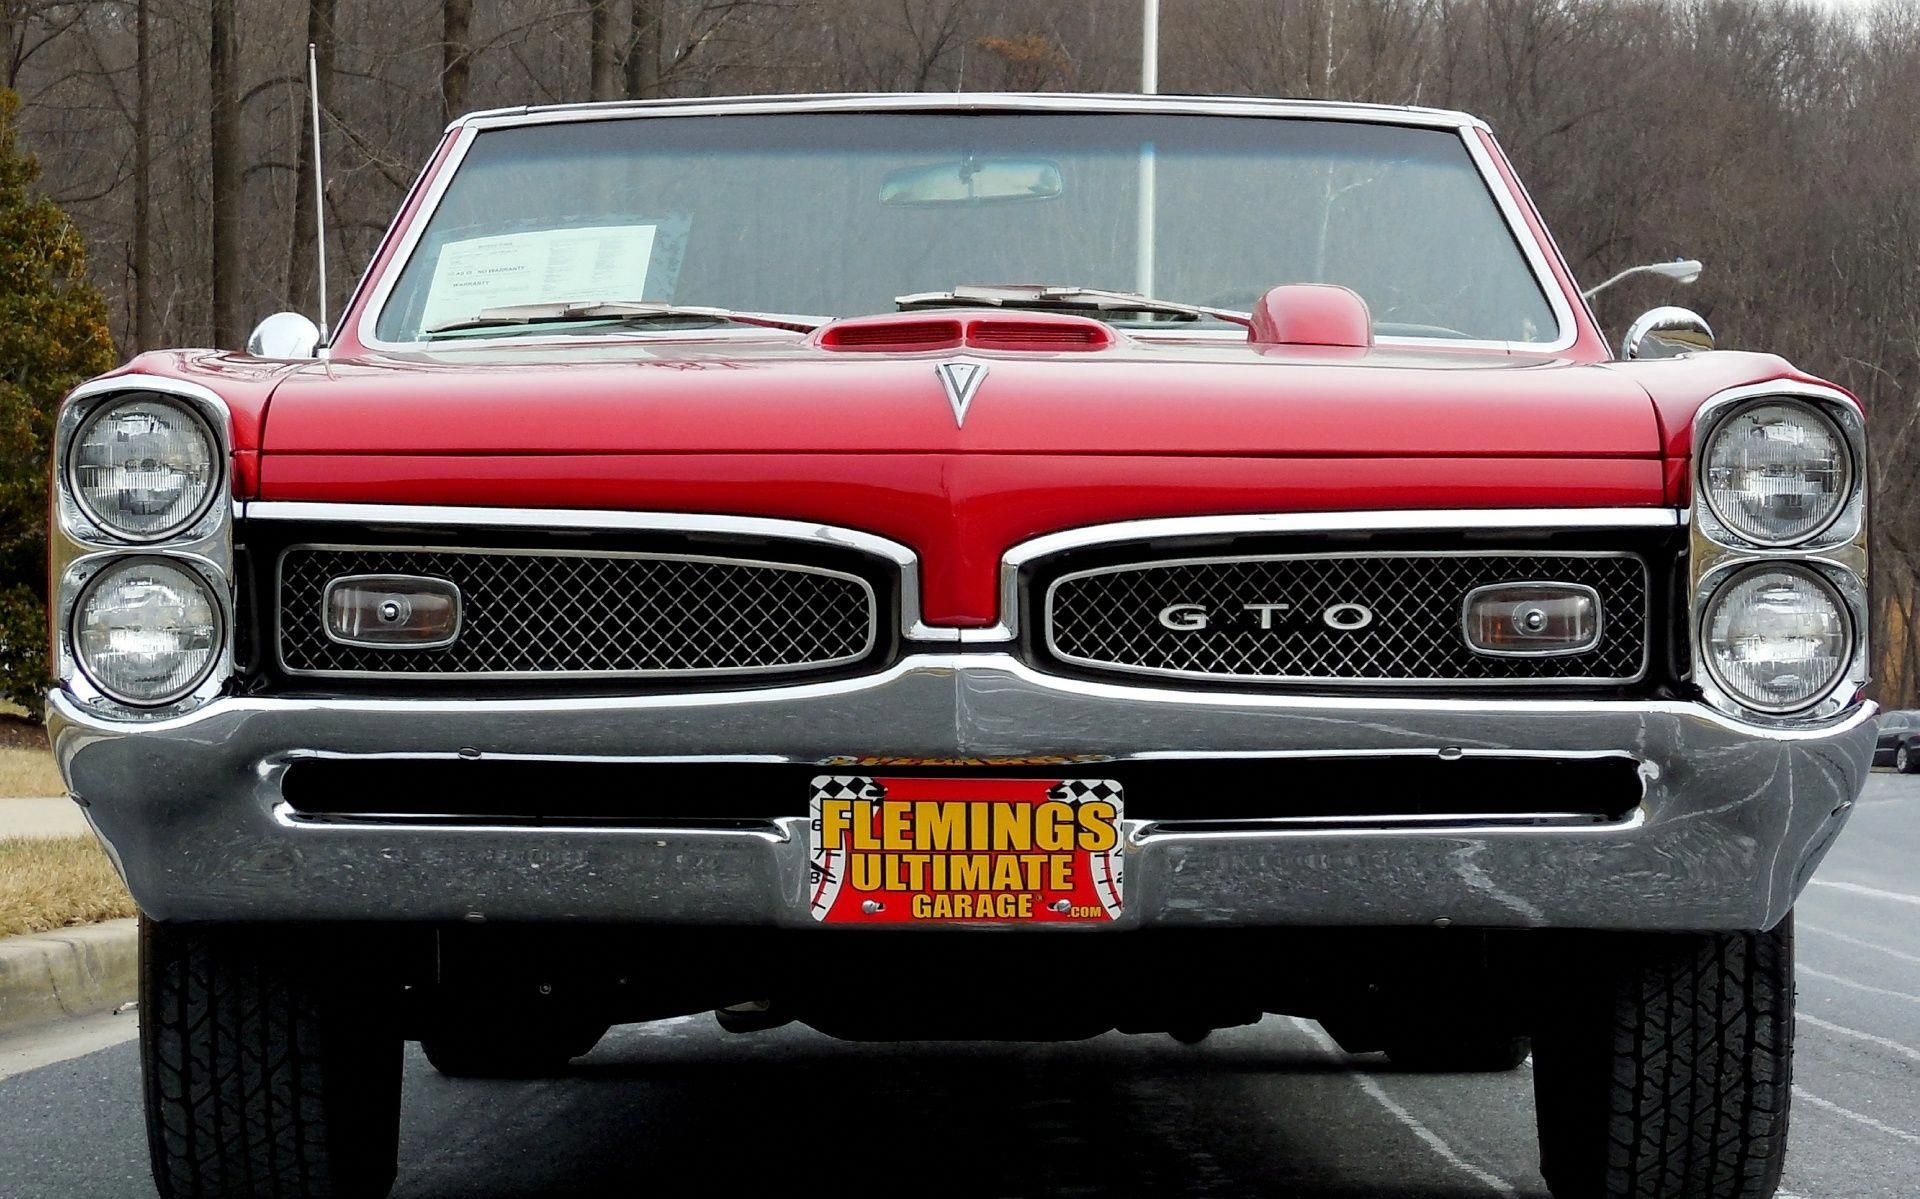 Otic Cars For Sale Flemings Ultimate Garage 1967 Pontiac